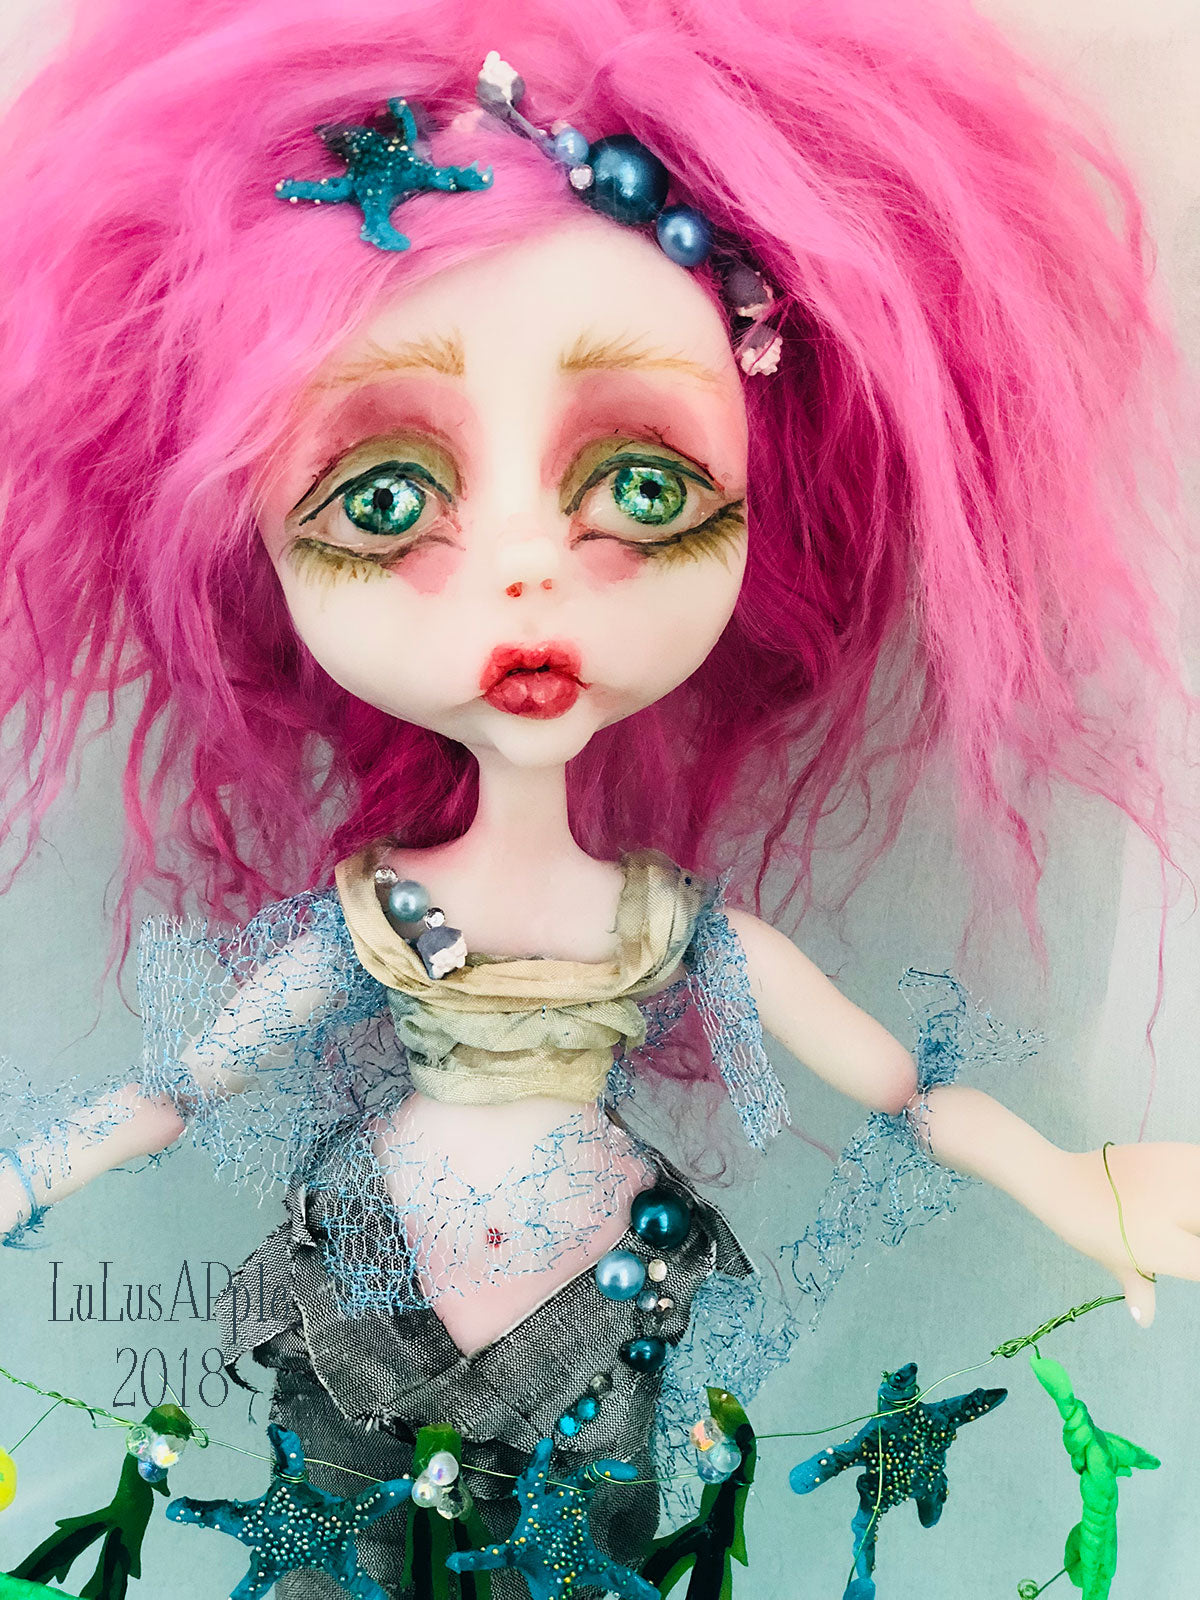 Shiraz Mermaid under the sea sadness OOAK Art Doll